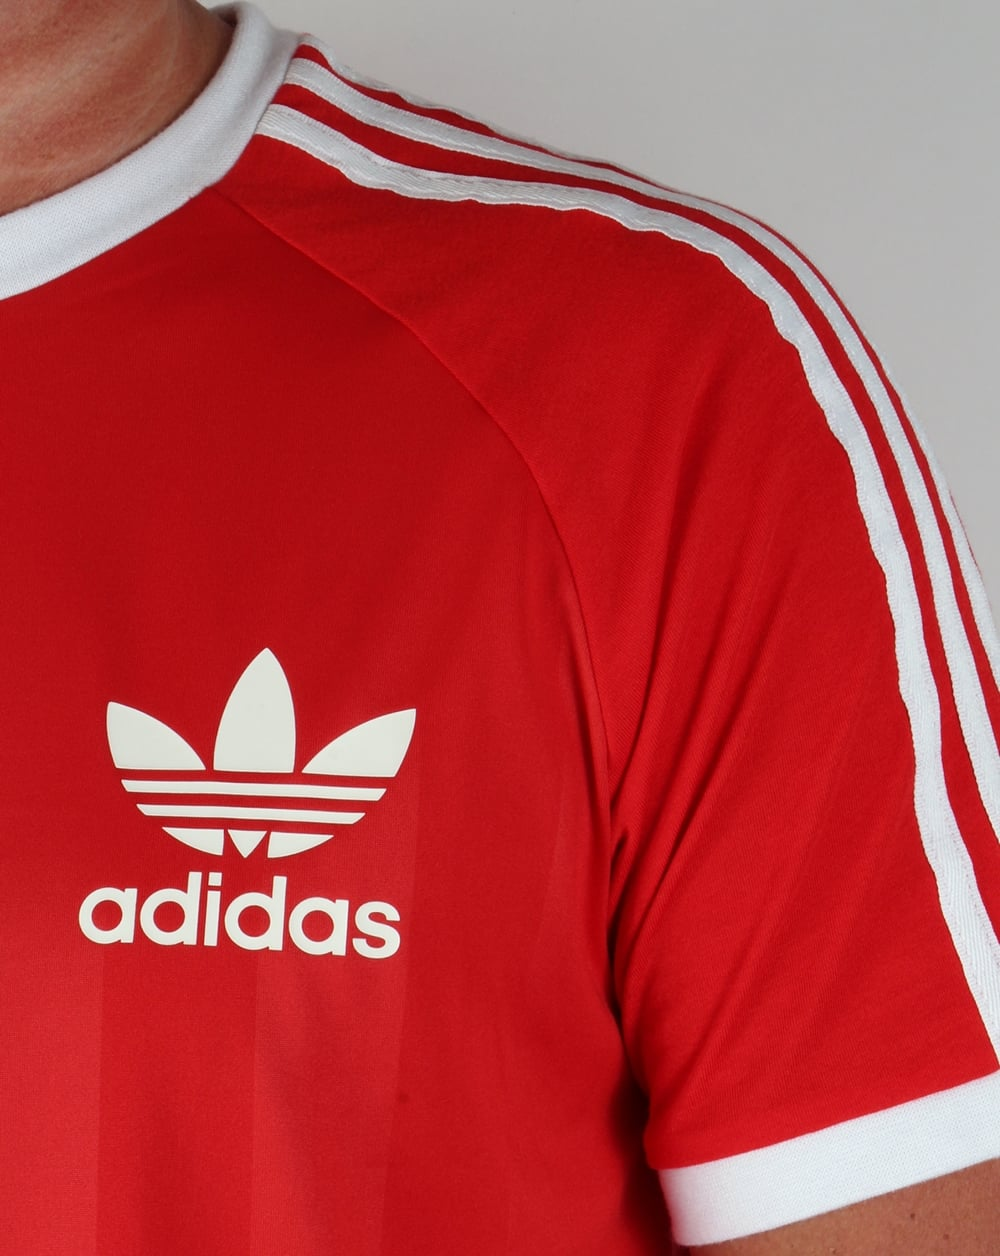 Adidas retro old skool ringer t shirt in red football for Adidas ringer t shirt